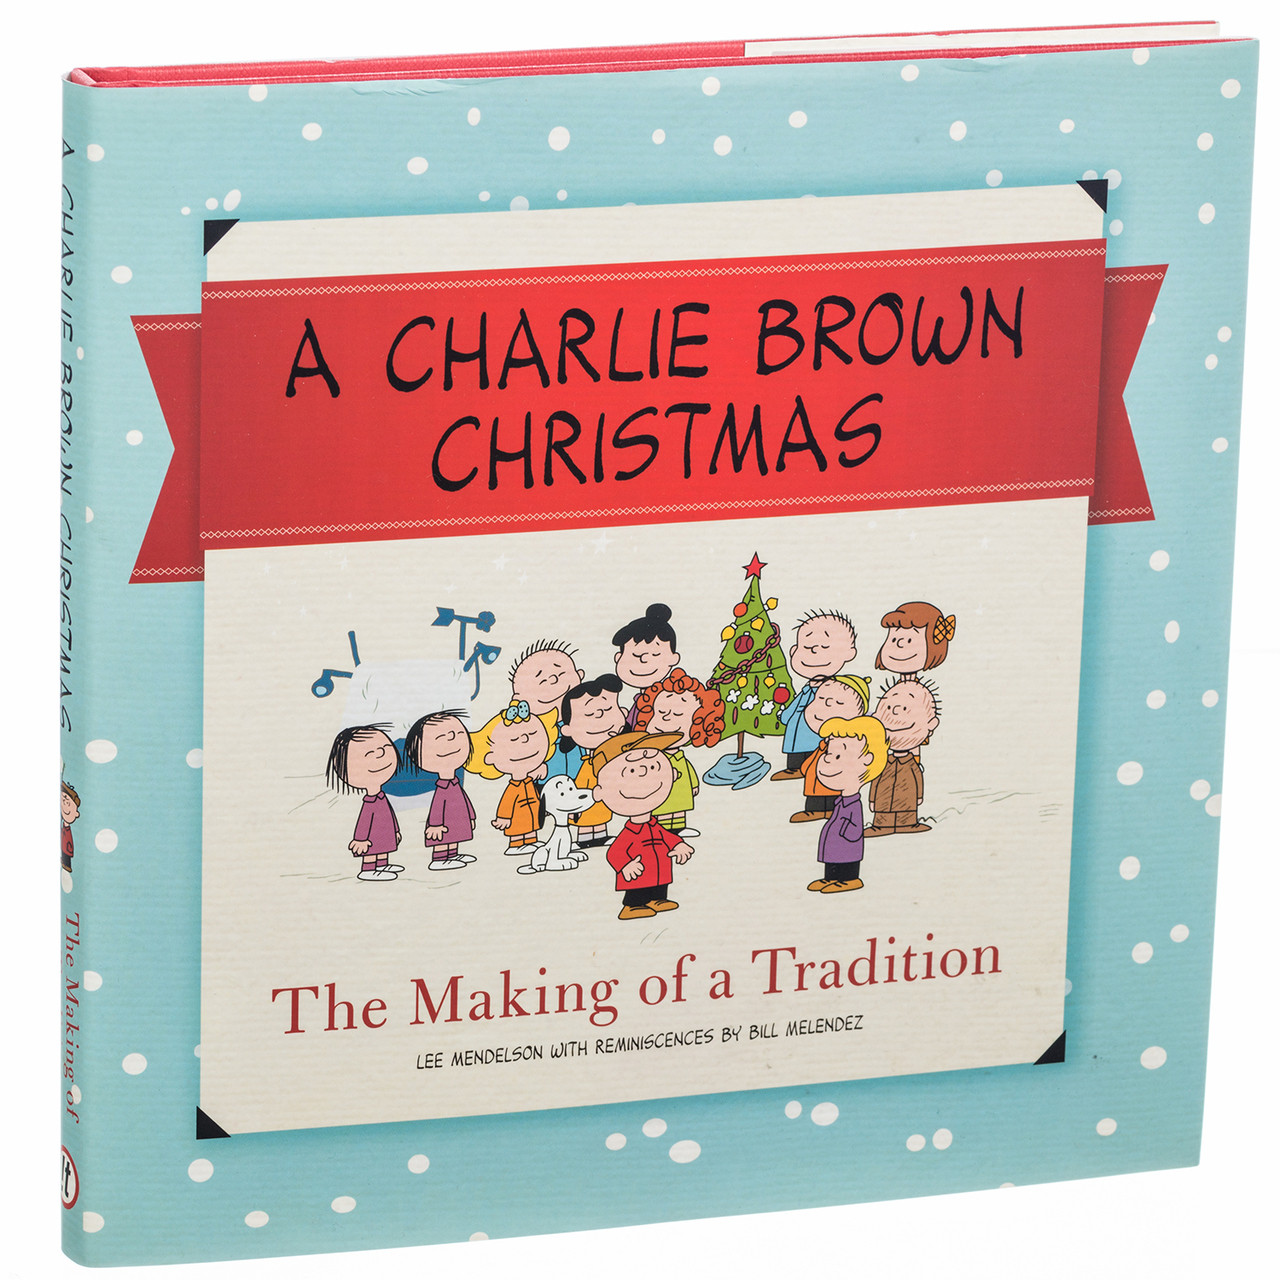 A Charlie Brown Christmas Book.A Charlie Brown Christmas The Making Of A Tradition Book